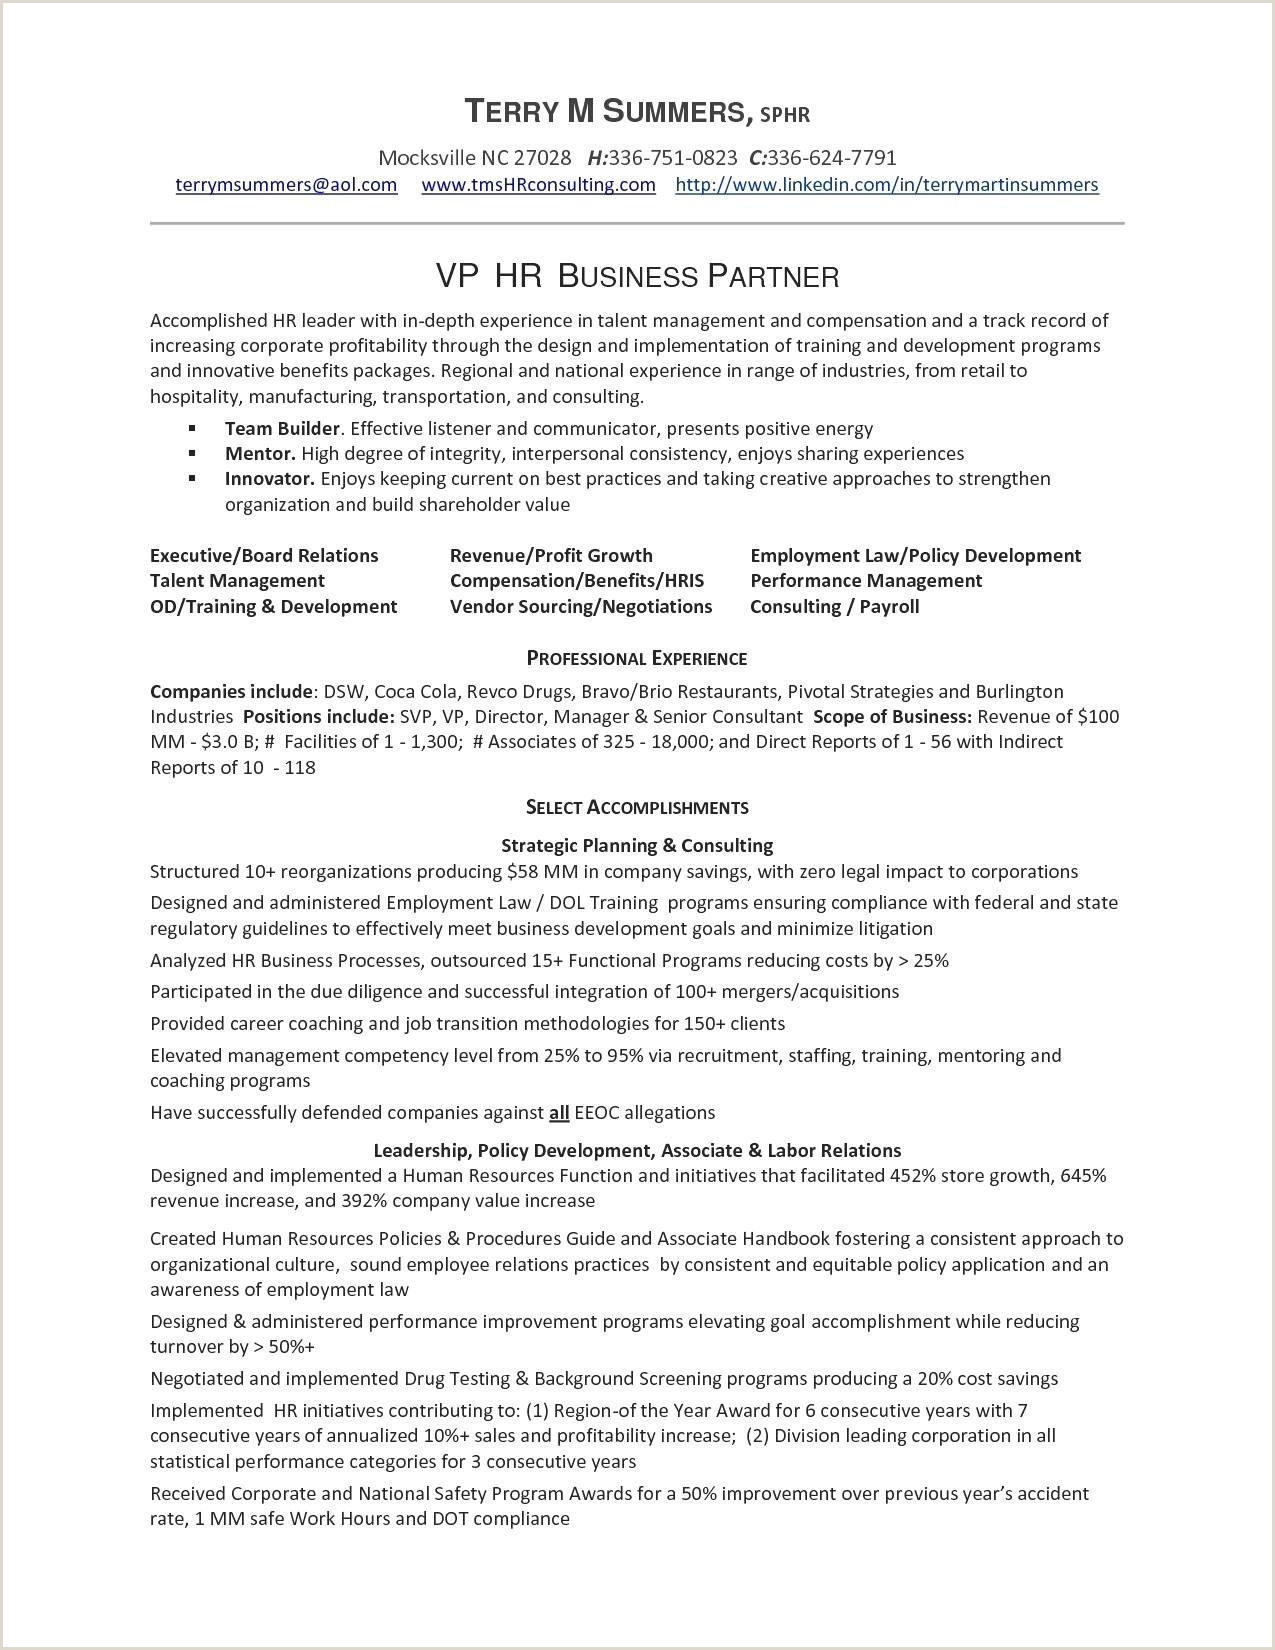 Resume Samples For Accounting Jobs In India Valid Resume